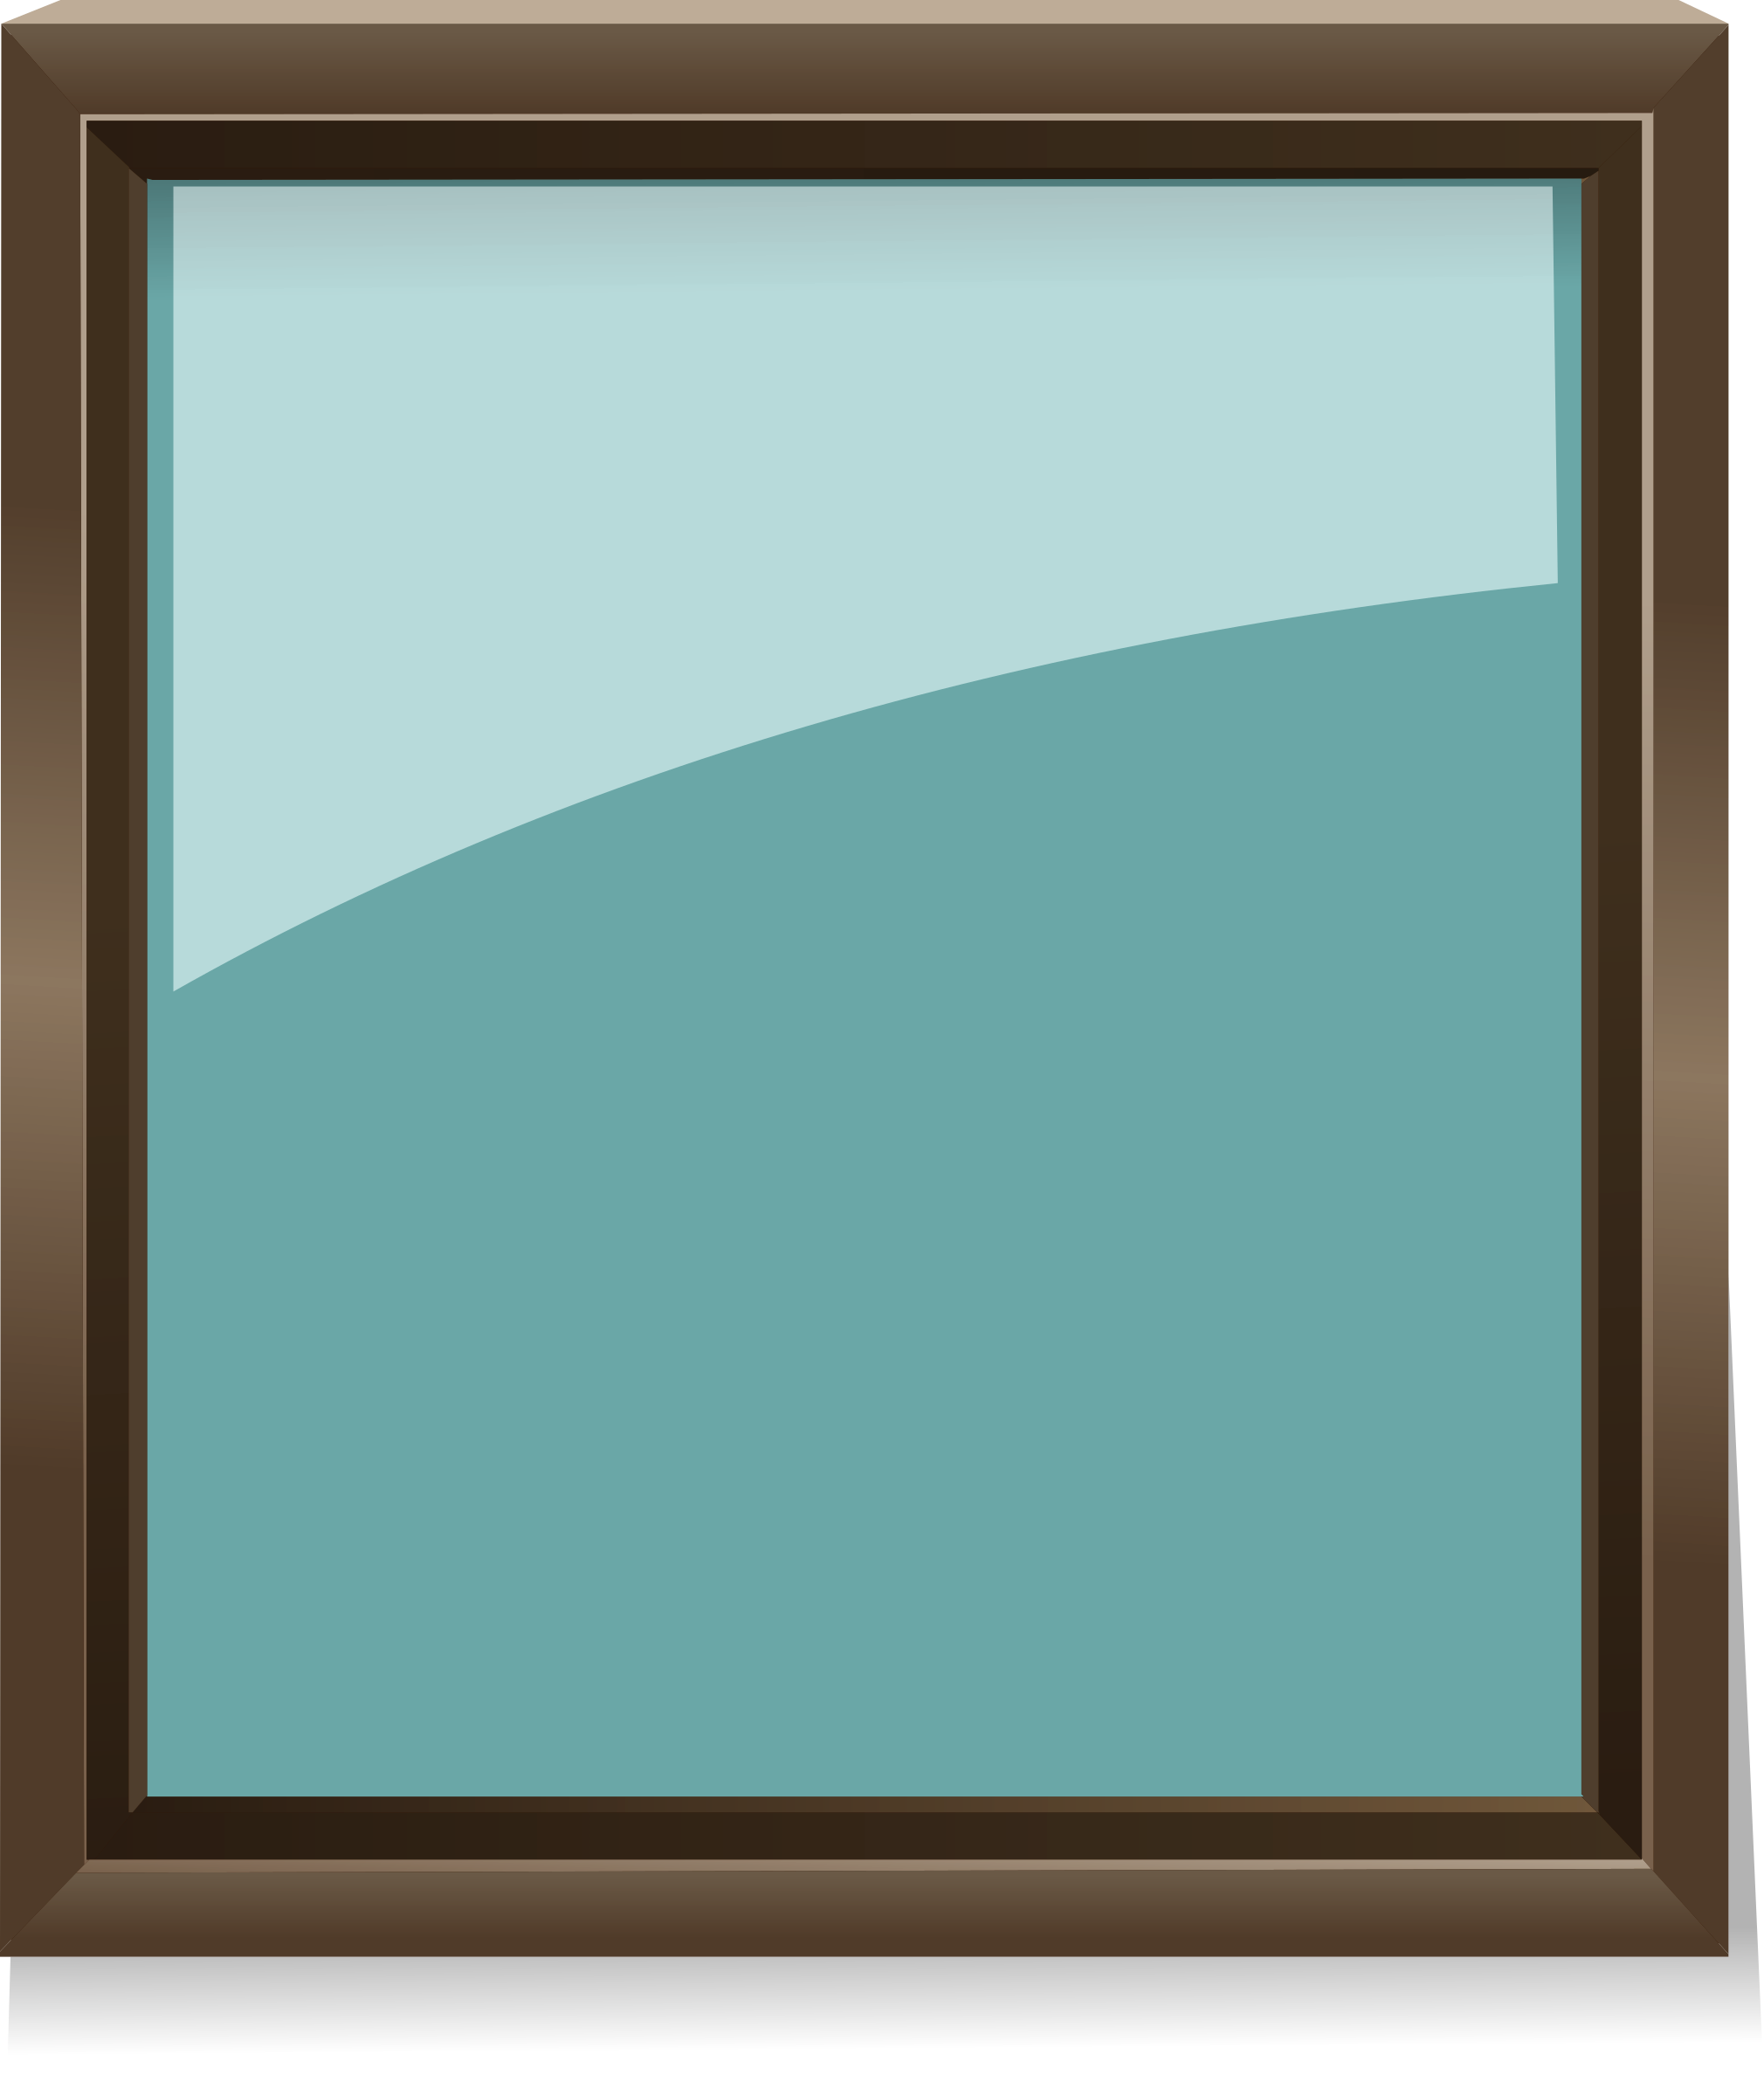 Glass Picture Frame Vector Clipart image - Free stock ... (2020 x 2400 Pixel)